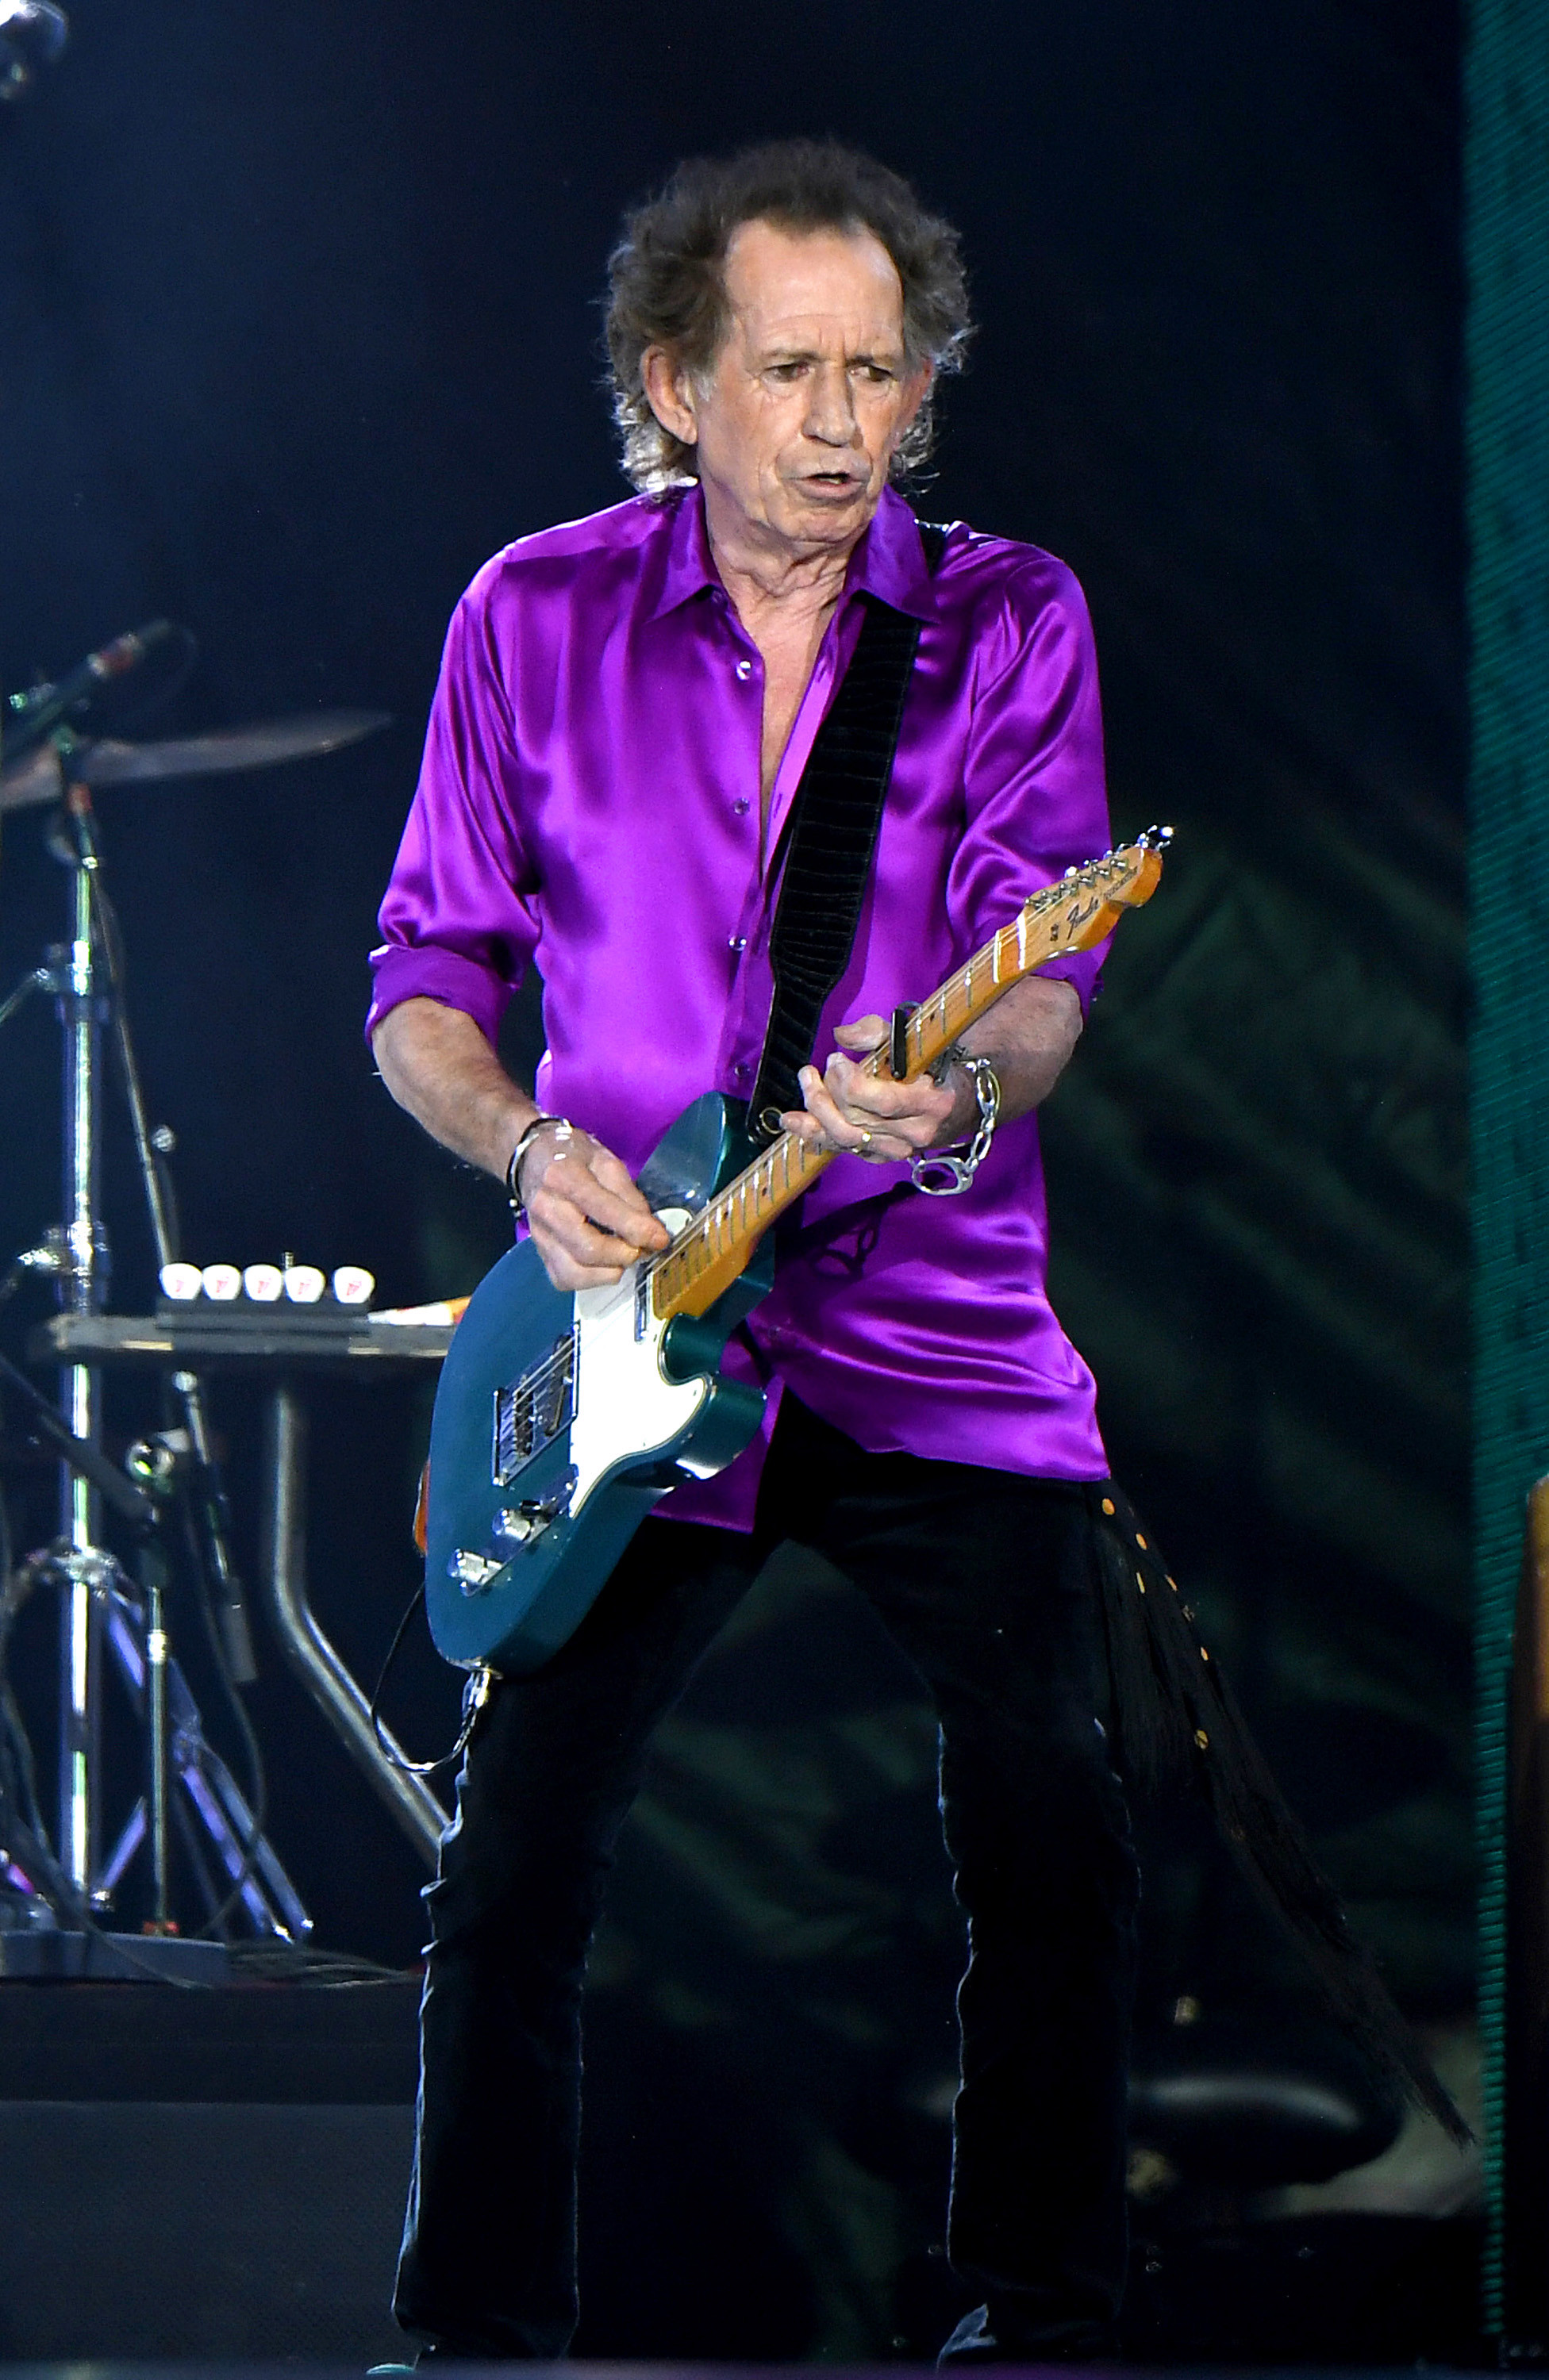 Keith Richard is still touring with The Rolling Stones this year